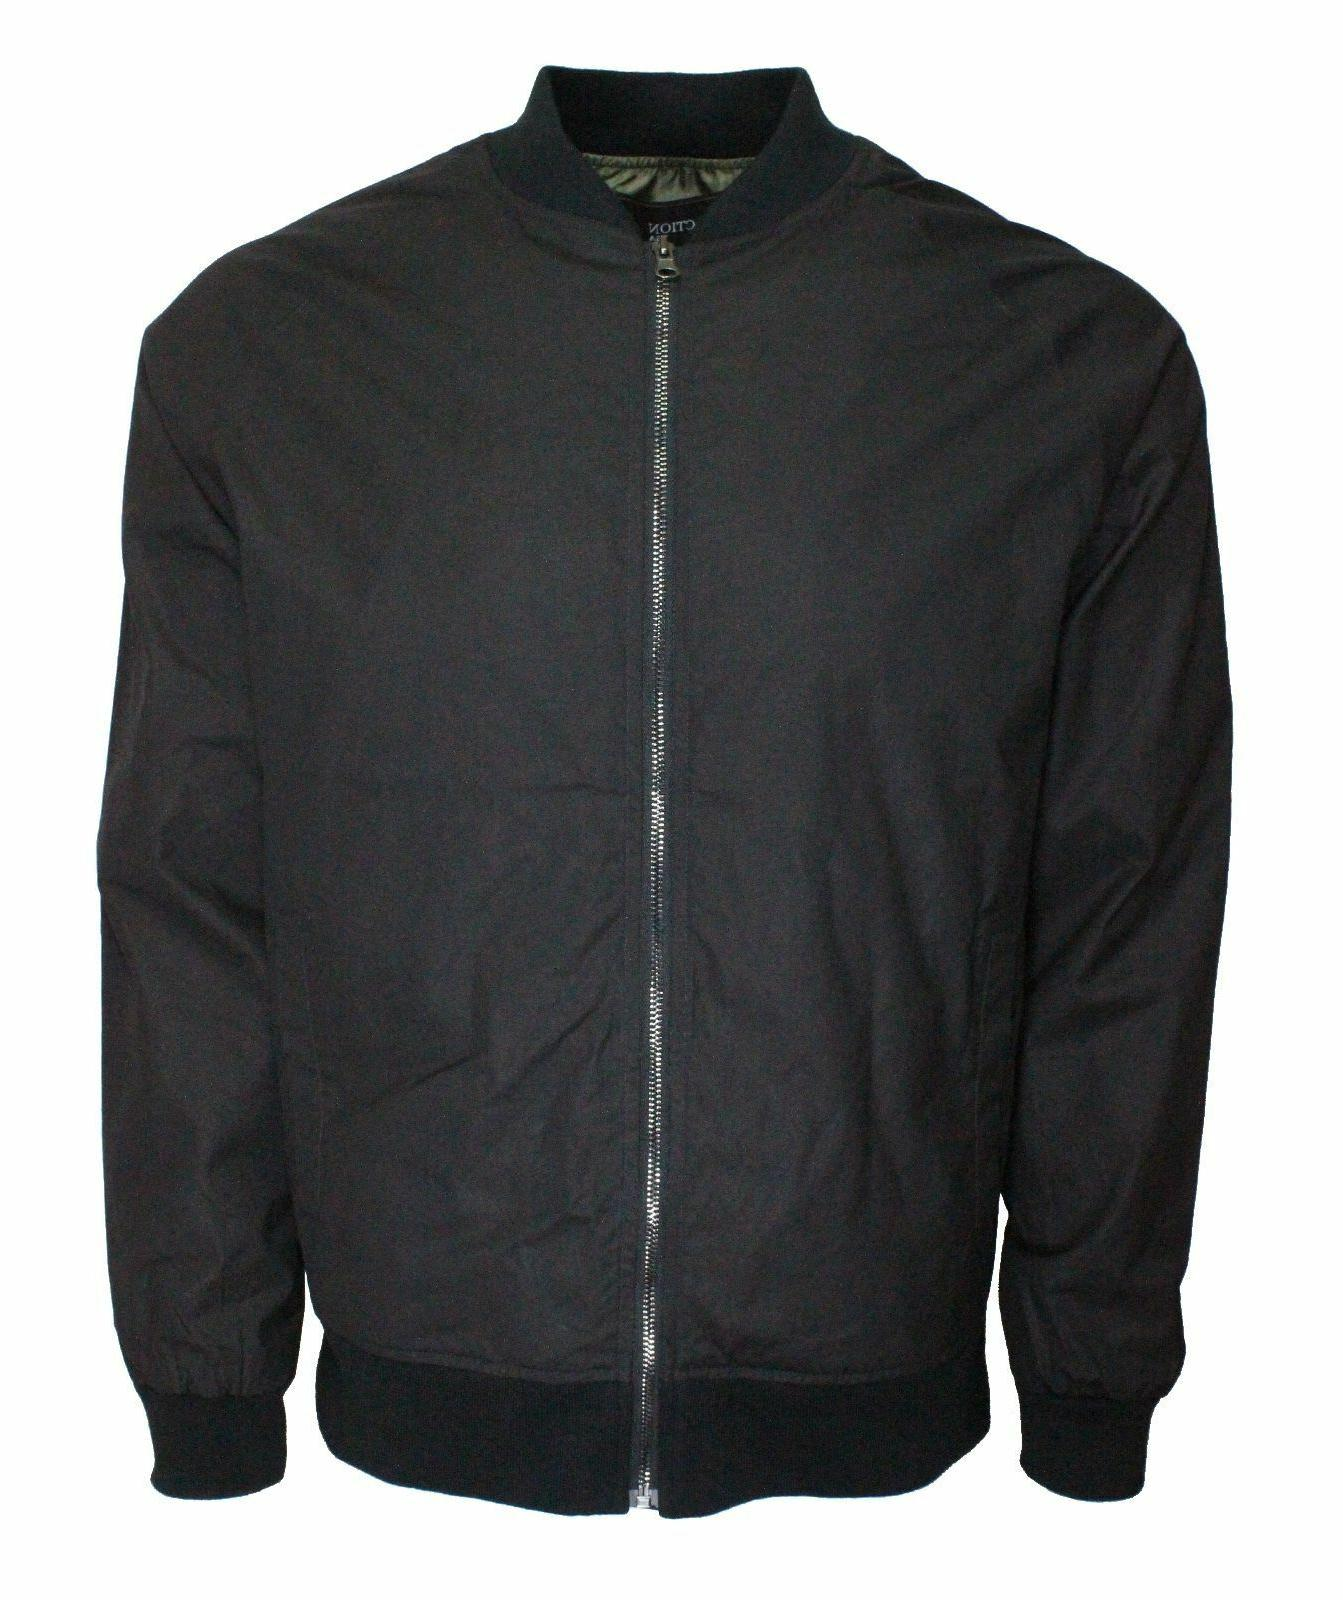 Men's lightweight Bomber Harrington Jacket slim fit Black.